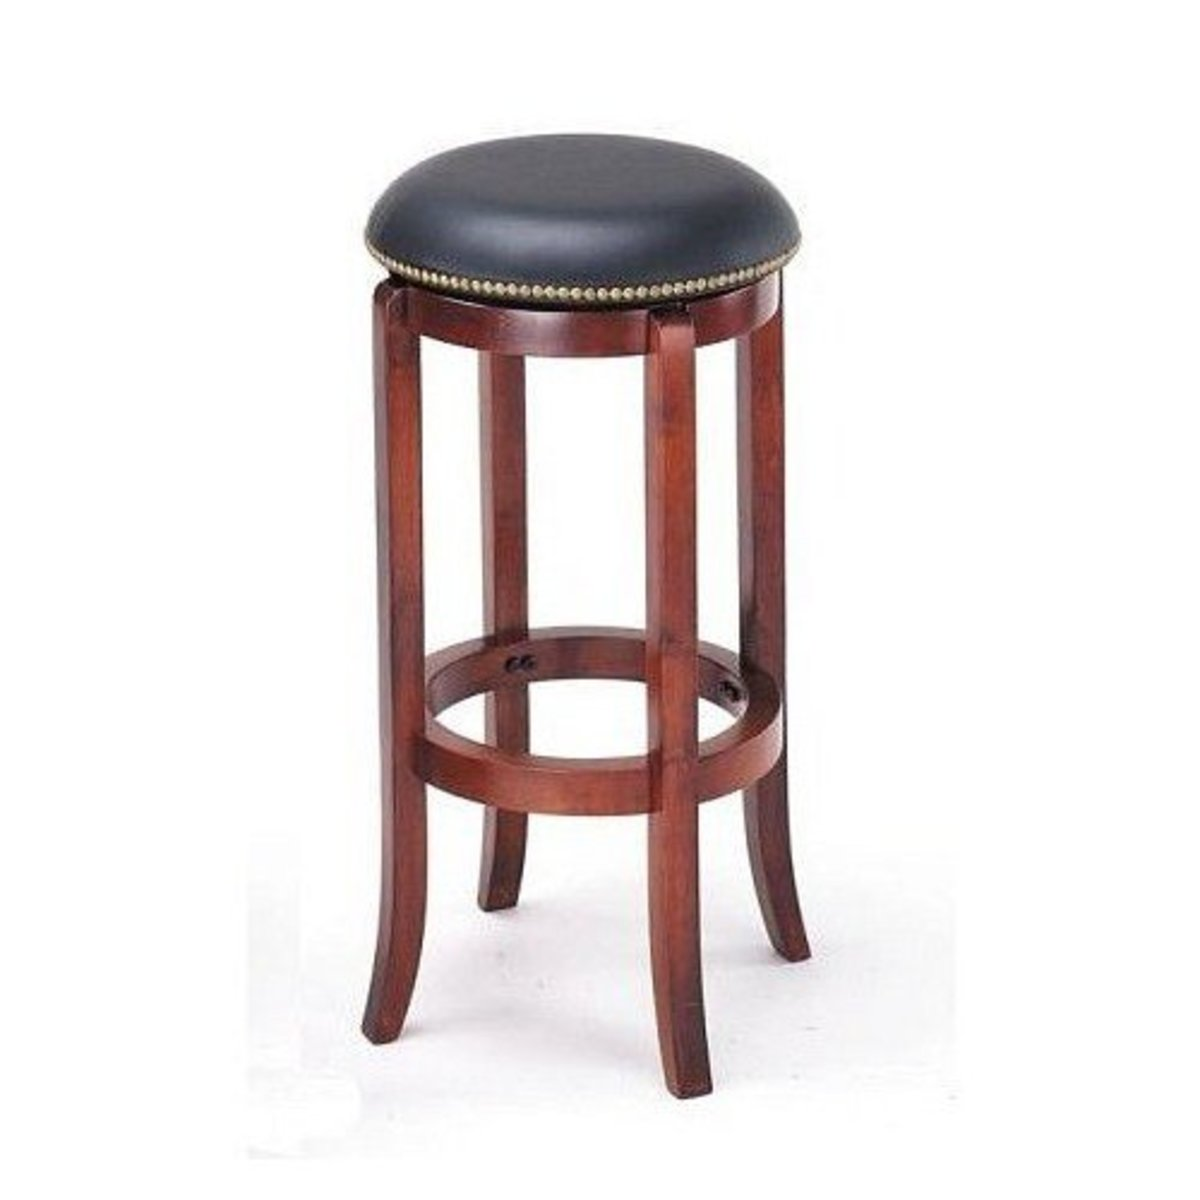 Groovy Swivel Bar Stool Guide Dengarden Andrewgaddart Wooden Chair Designs For Living Room Andrewgaddartcom